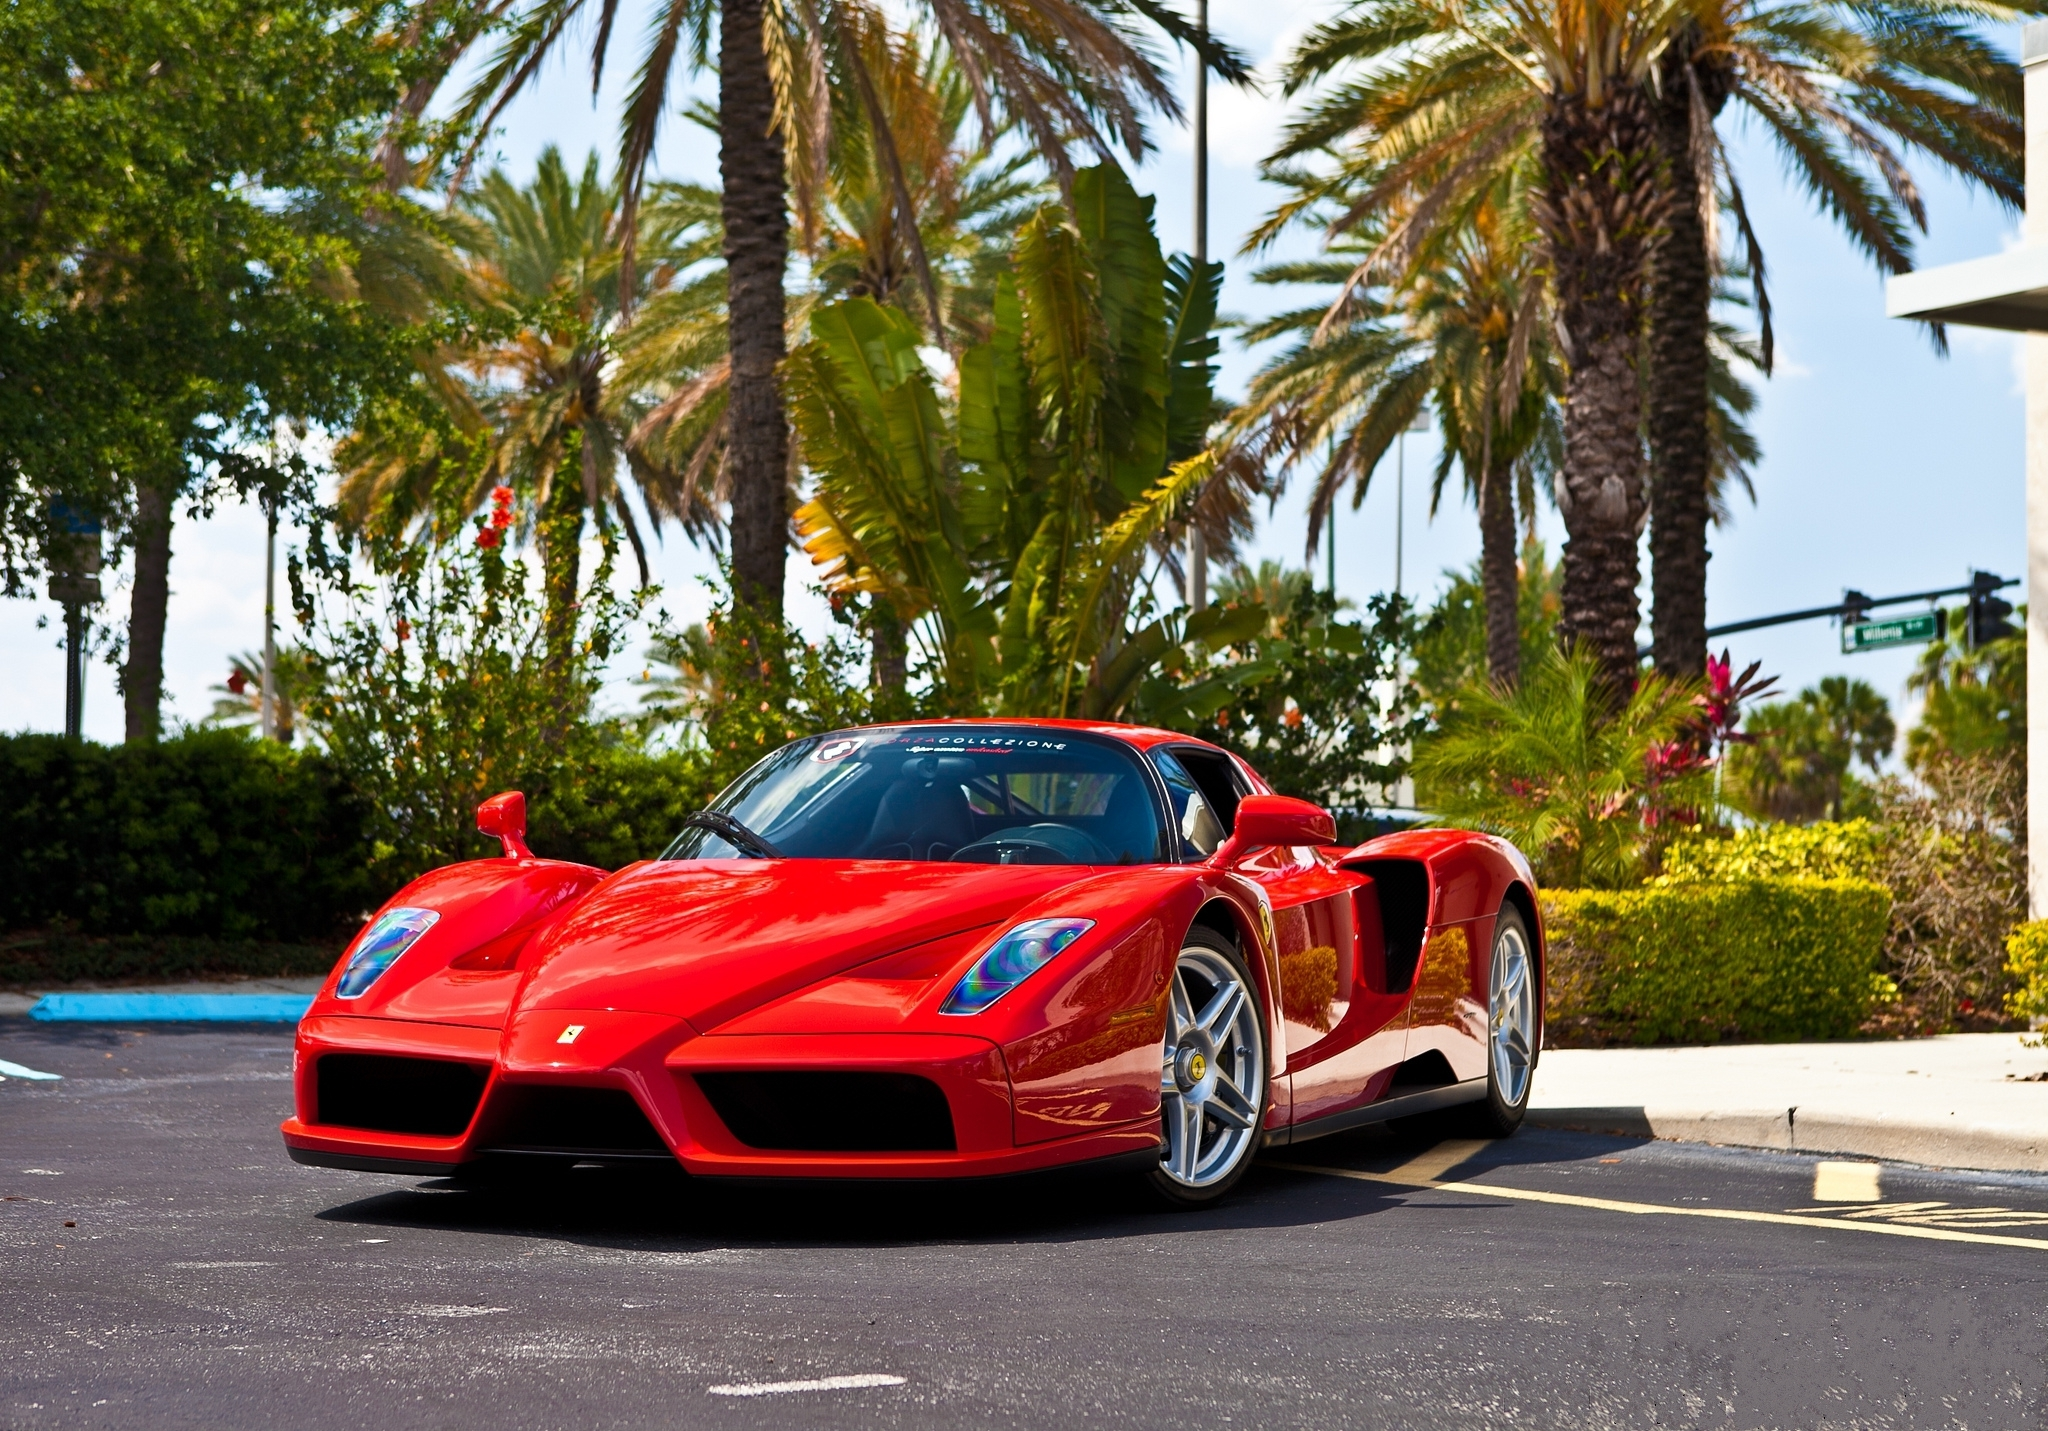 Exotic Cars Hd Wallpapers: Vehicles Cars Ferrari Enzo Red Exotic-cars Wallpaper